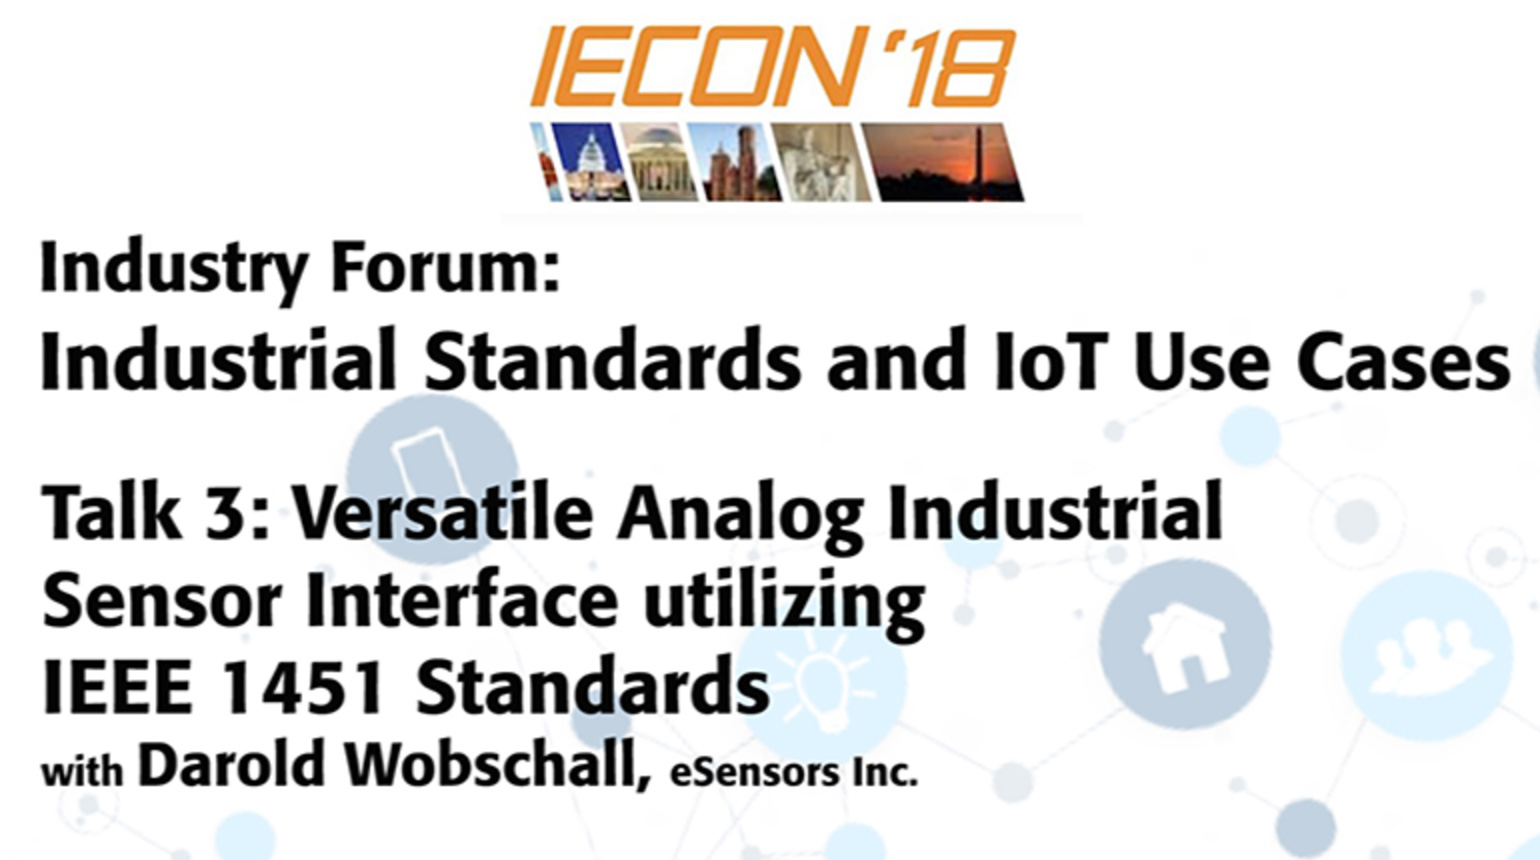 Industrial Standards and IoT Use Cases - Talk Three: IECON 2018